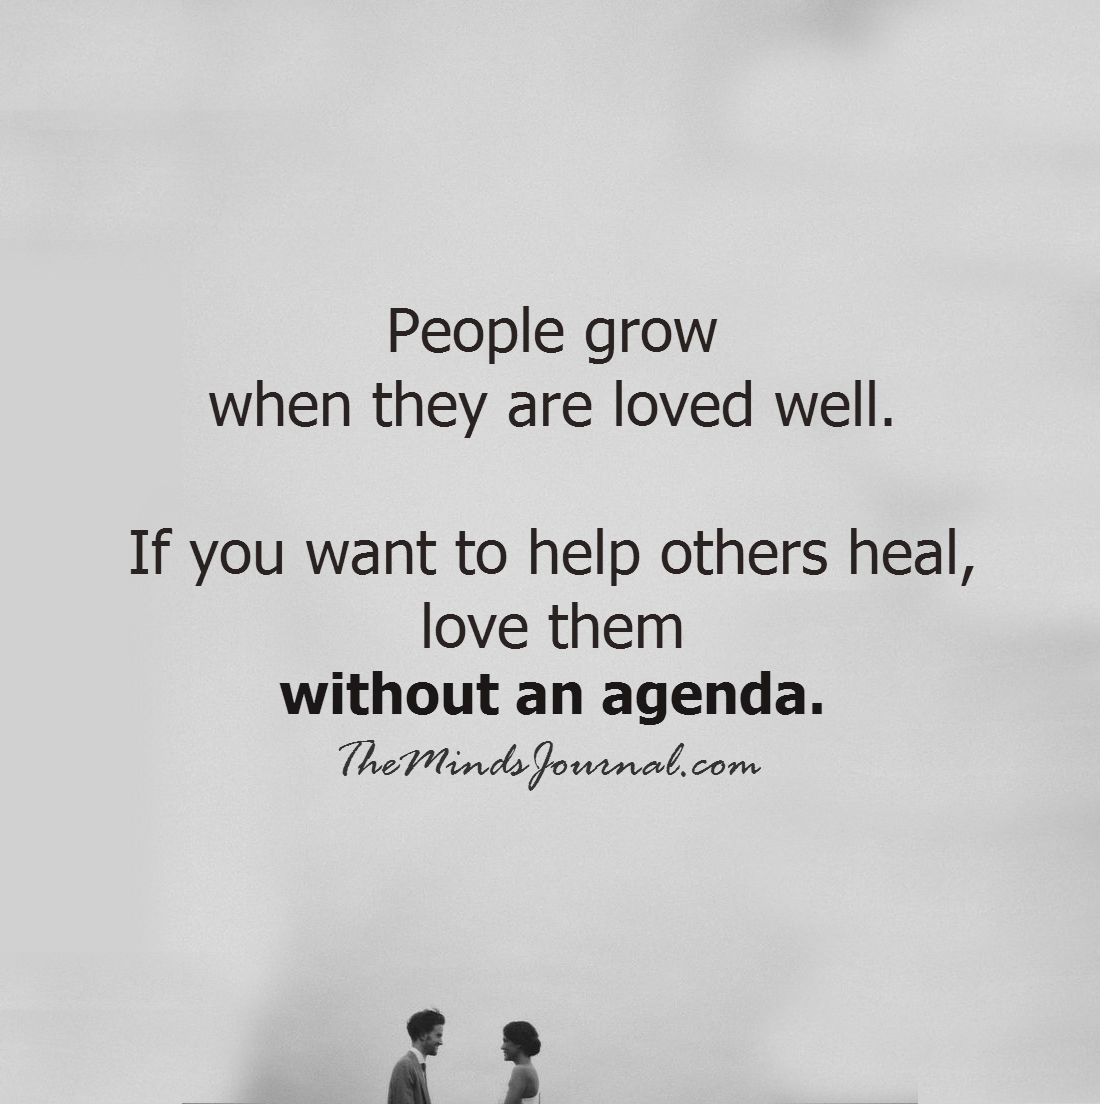 People grow when they are loved